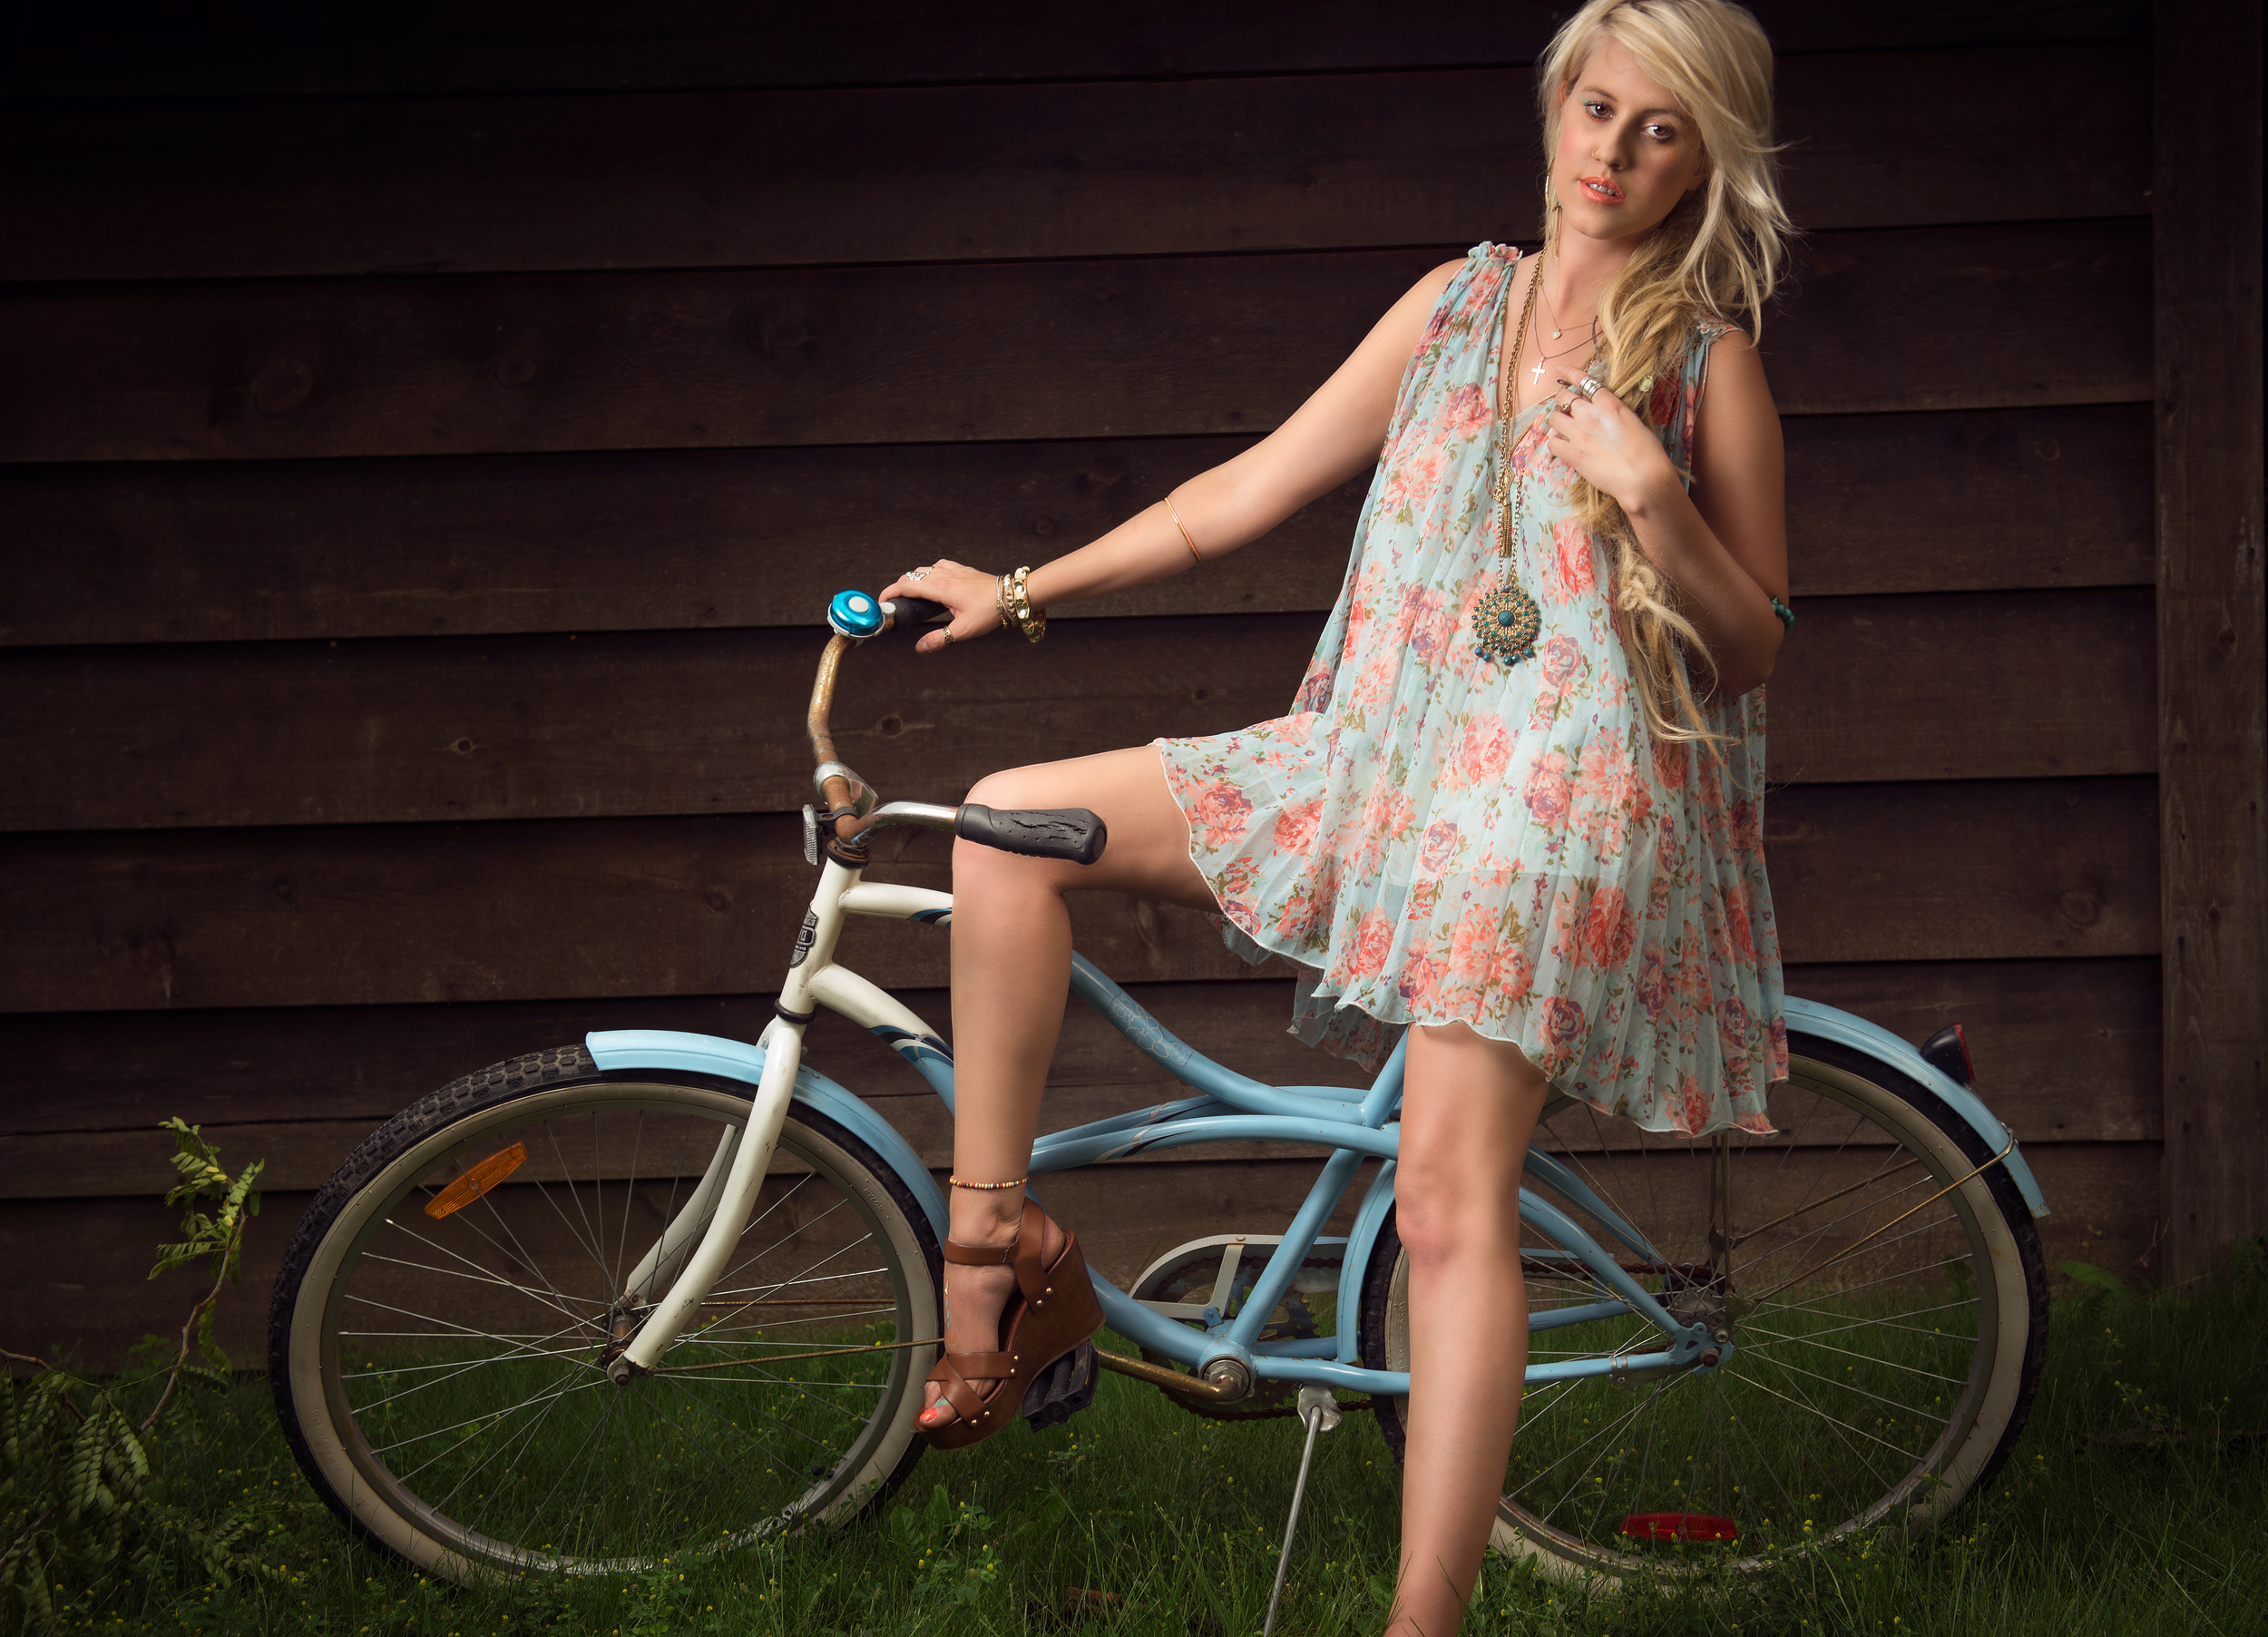 BOHEMIAN BIKE RIDE © Kevin Vyse Photography 2015